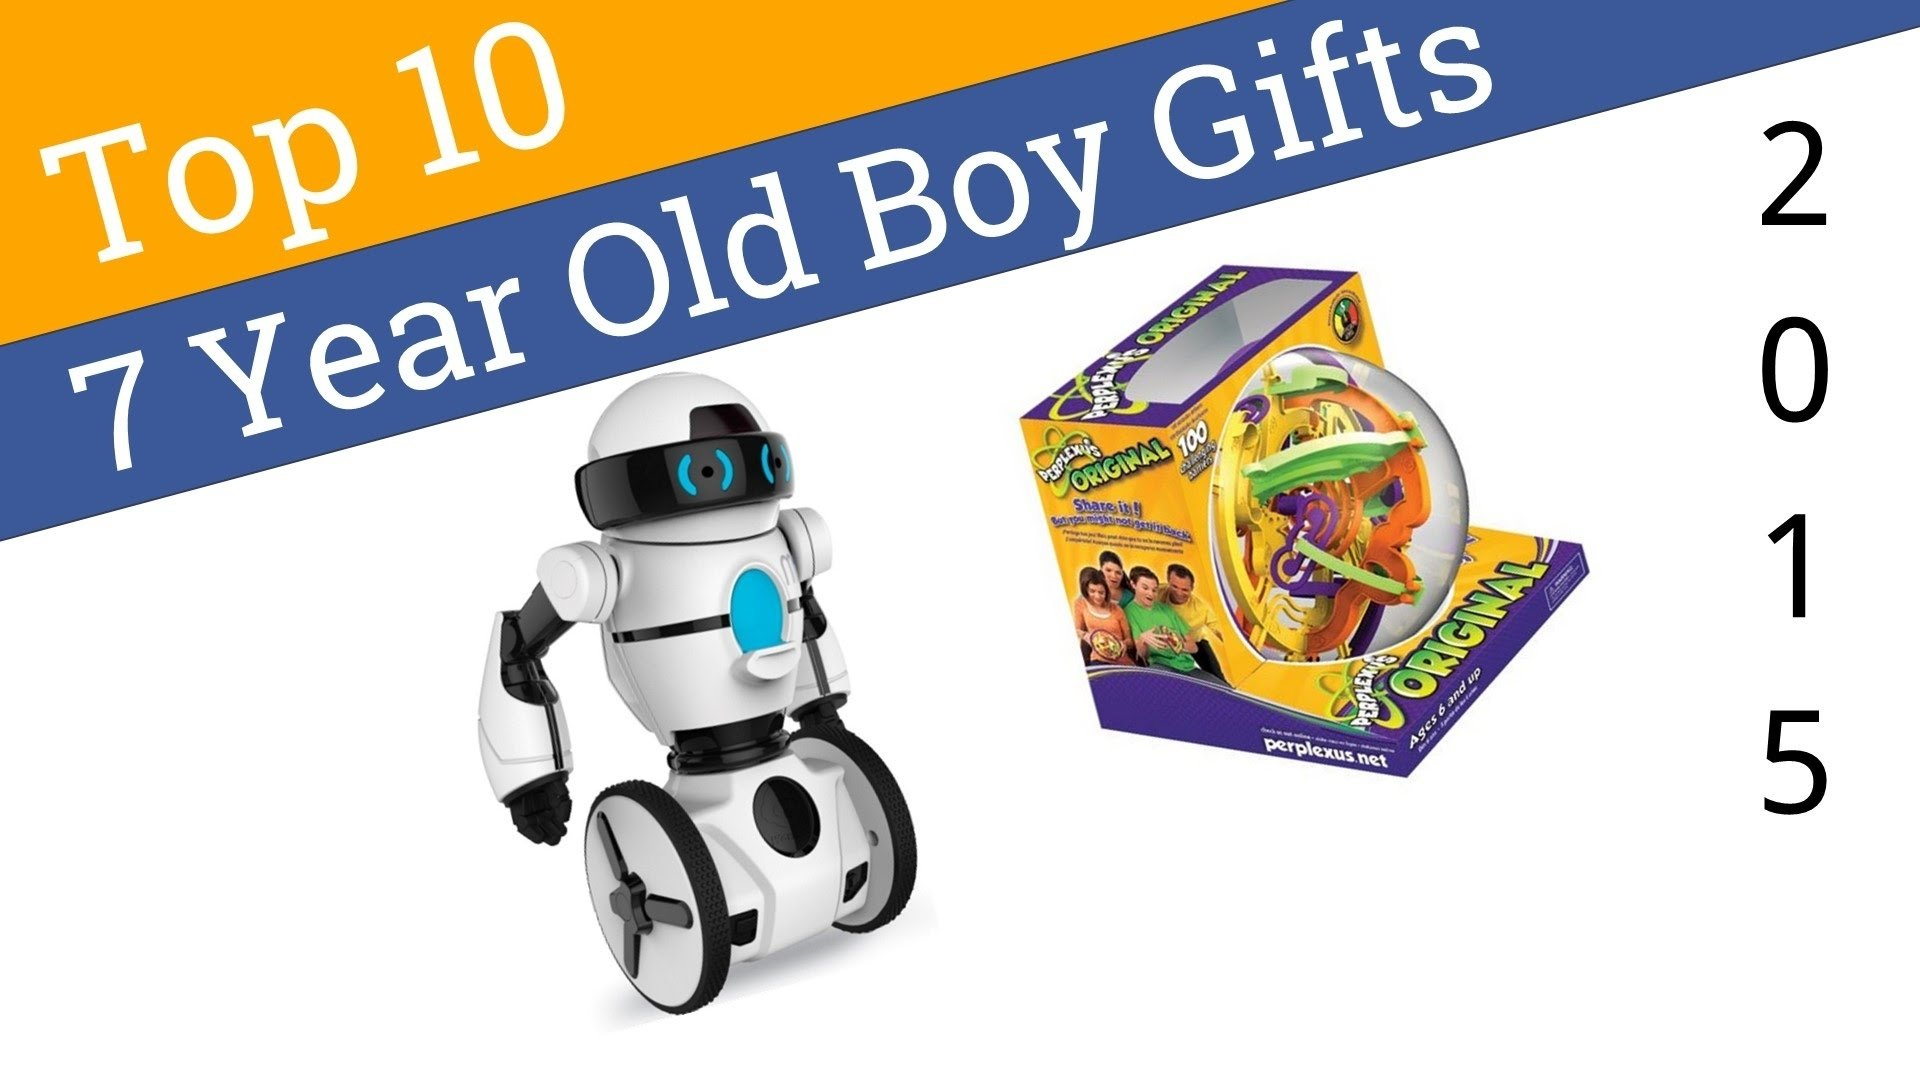 10 best 7 year old boy gifts 2015 - youtube